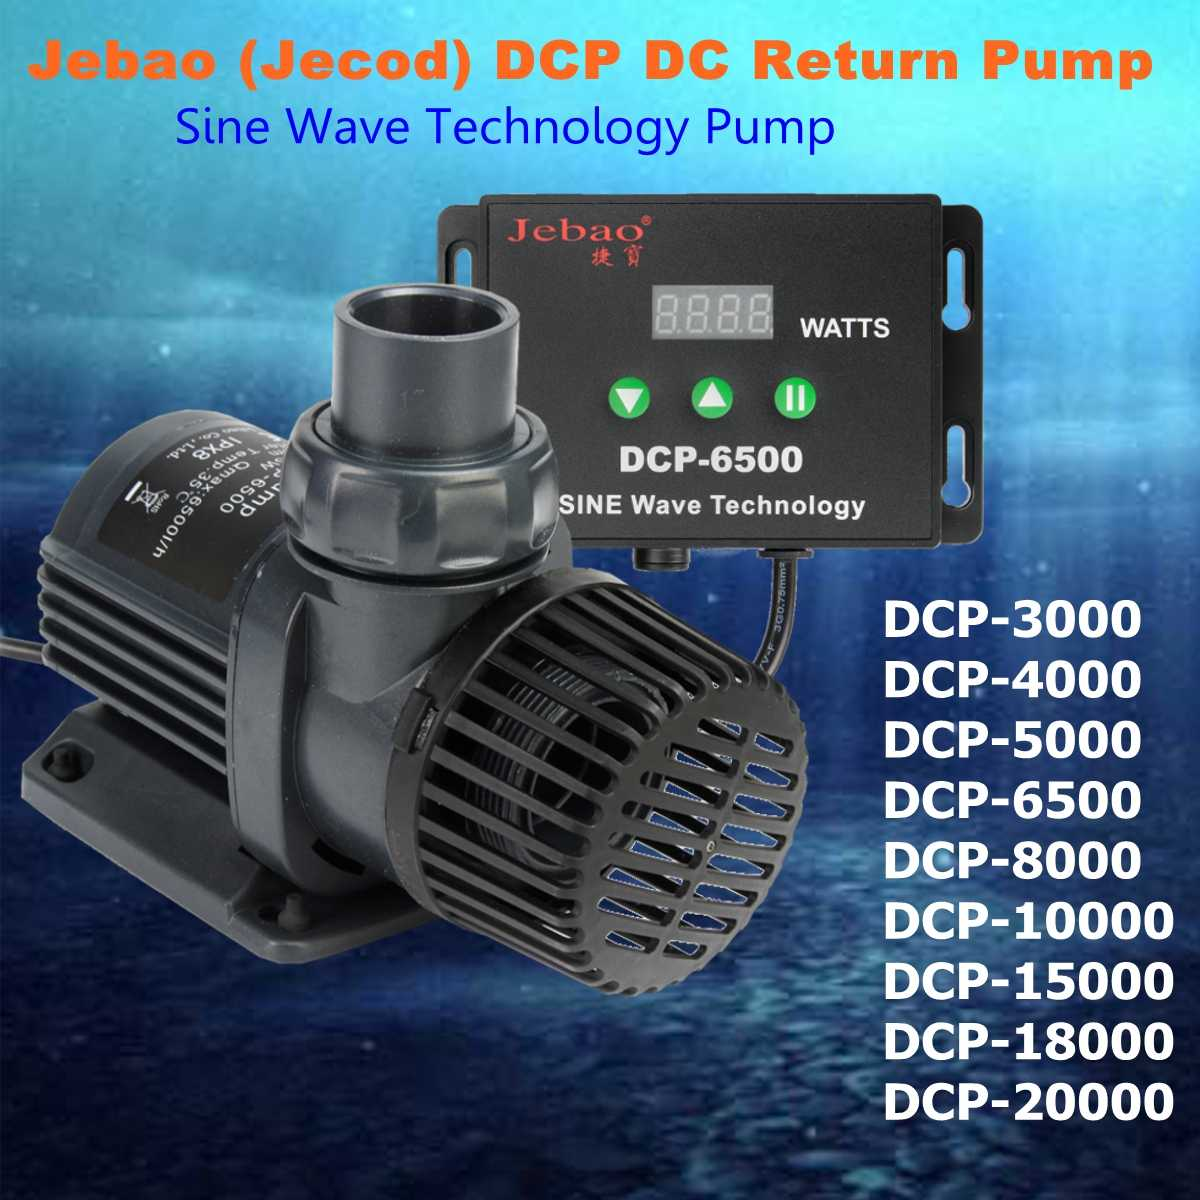 Jebao/Jecod DCP Series 3500-20000 Maring Flow Rate DC Sine Wave Return Submersible Water PumpJebao/Jecod DCP Series 3500-20000 Maring Flow Rate DC Sine Wave Return Submersible Water Pump